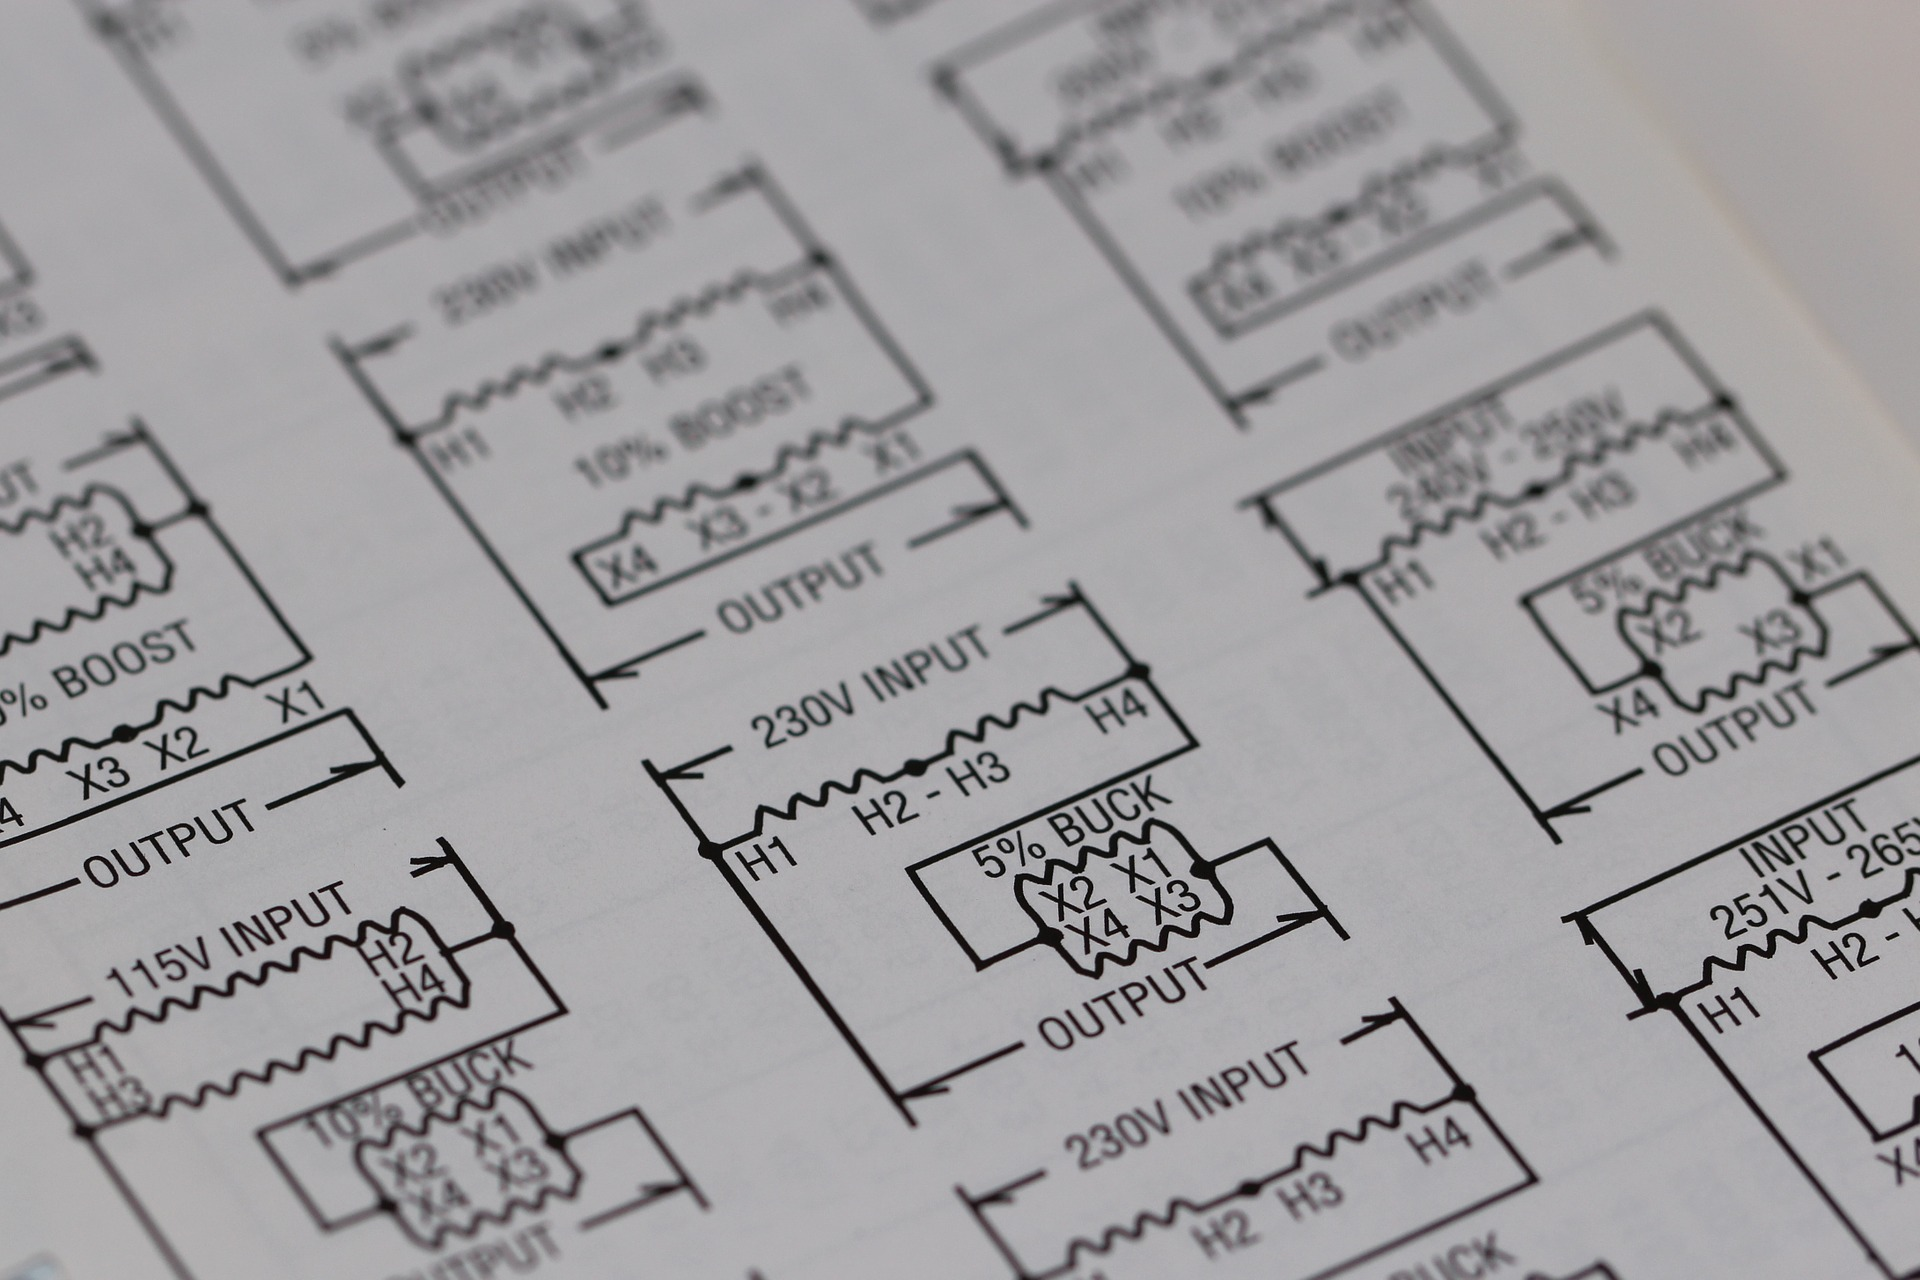 Autocad Electrical Drawings Amp Schematics Autocad